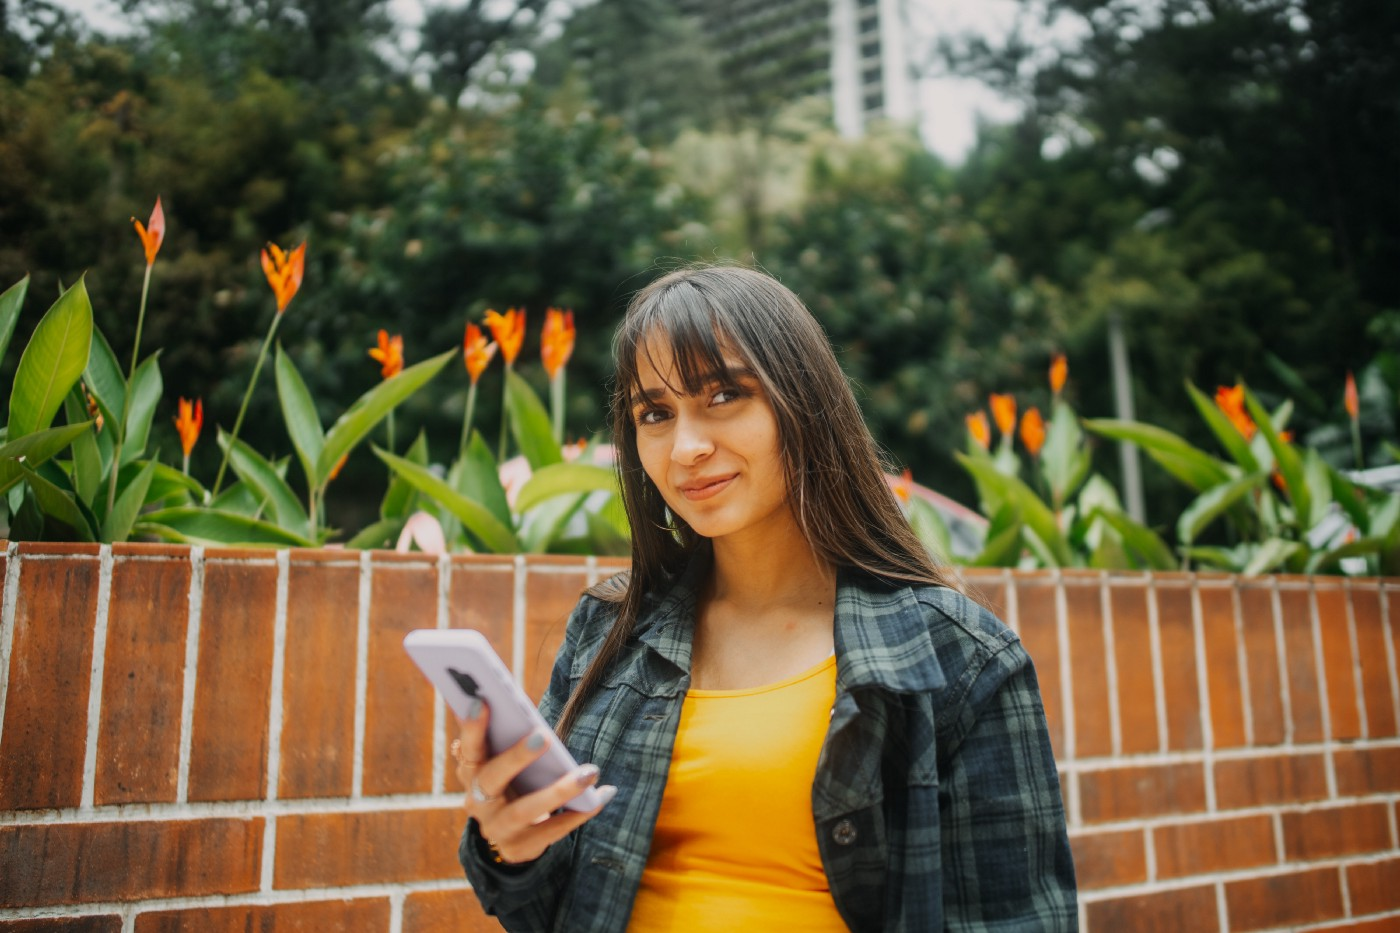 A woman stands in front of a brick wall. She holds an iPhone in her right hand.